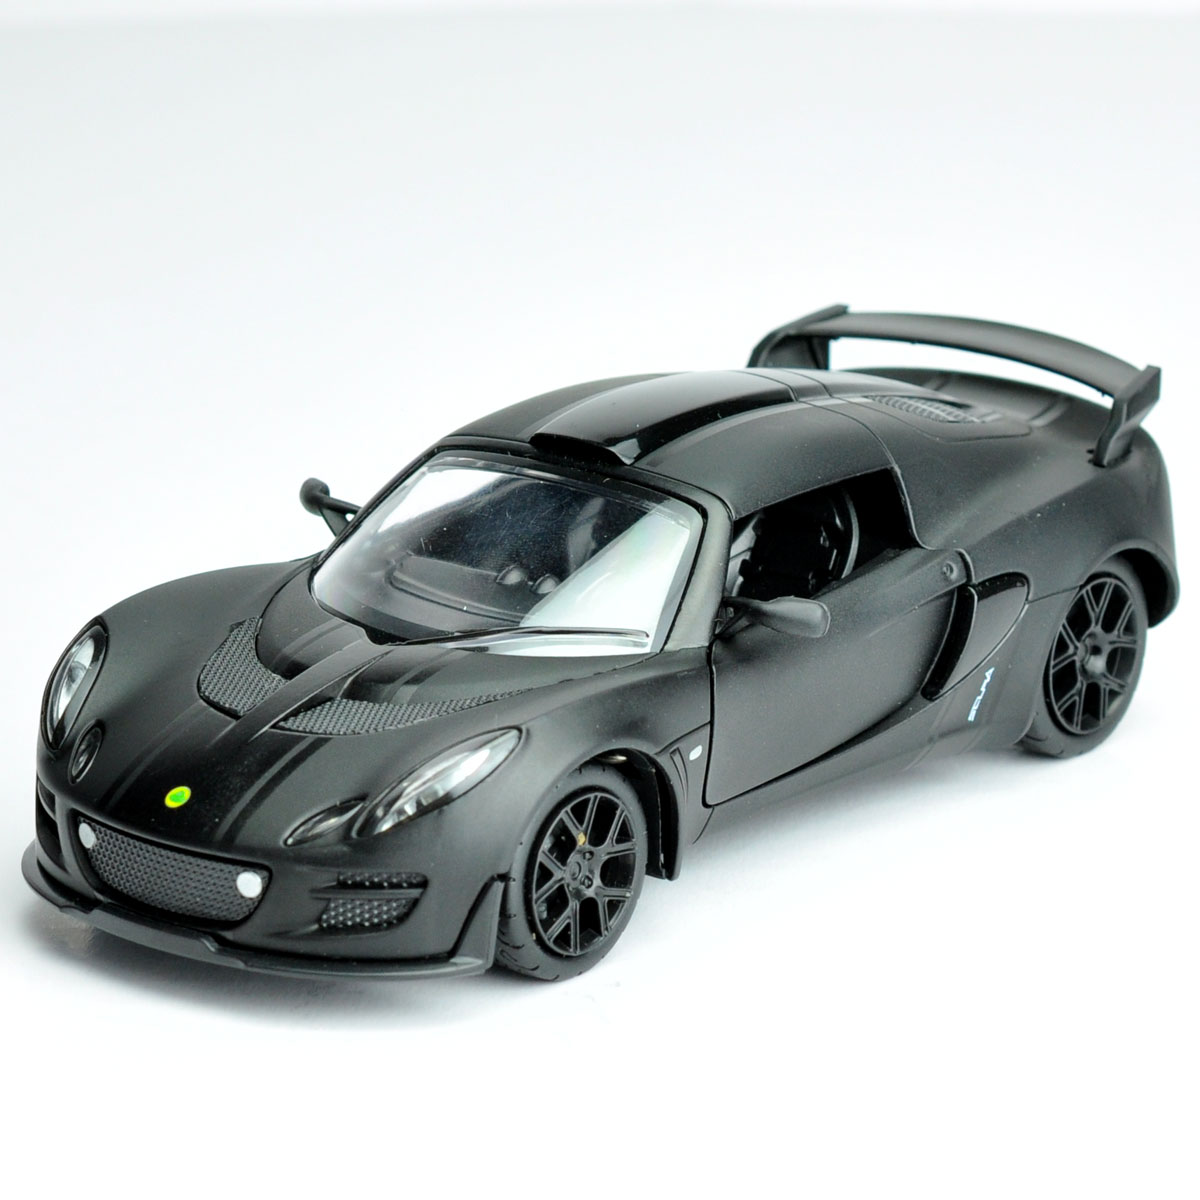 supercar 1 32 alloy hot wheels toy cars pull back model car car covers open the door lotus. Black Bedroom Furniture Sets. Home Design Ideas